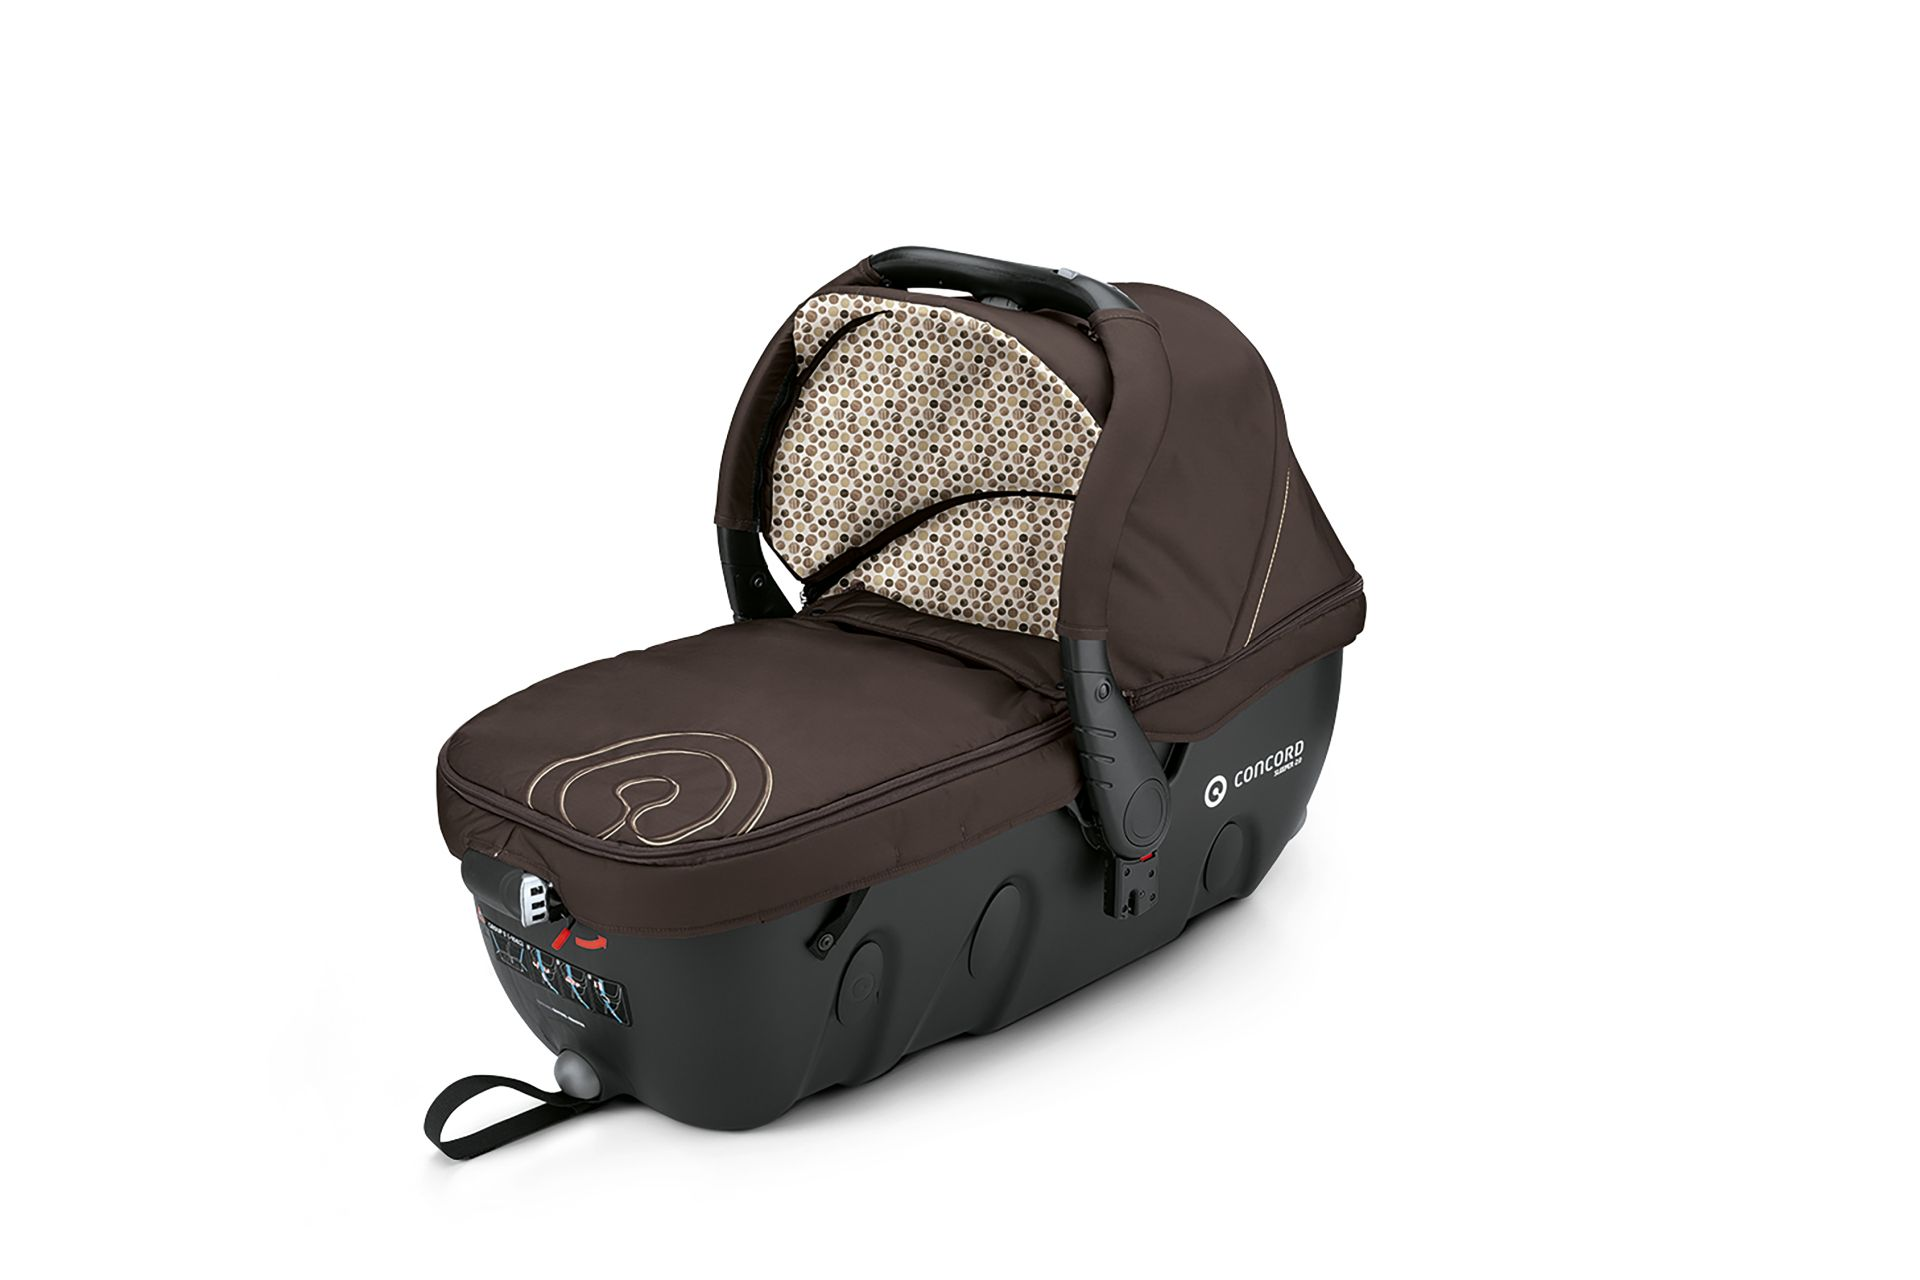 Concord Neo Travel Set 2017 Toffee Brown Buy At Kidsroom